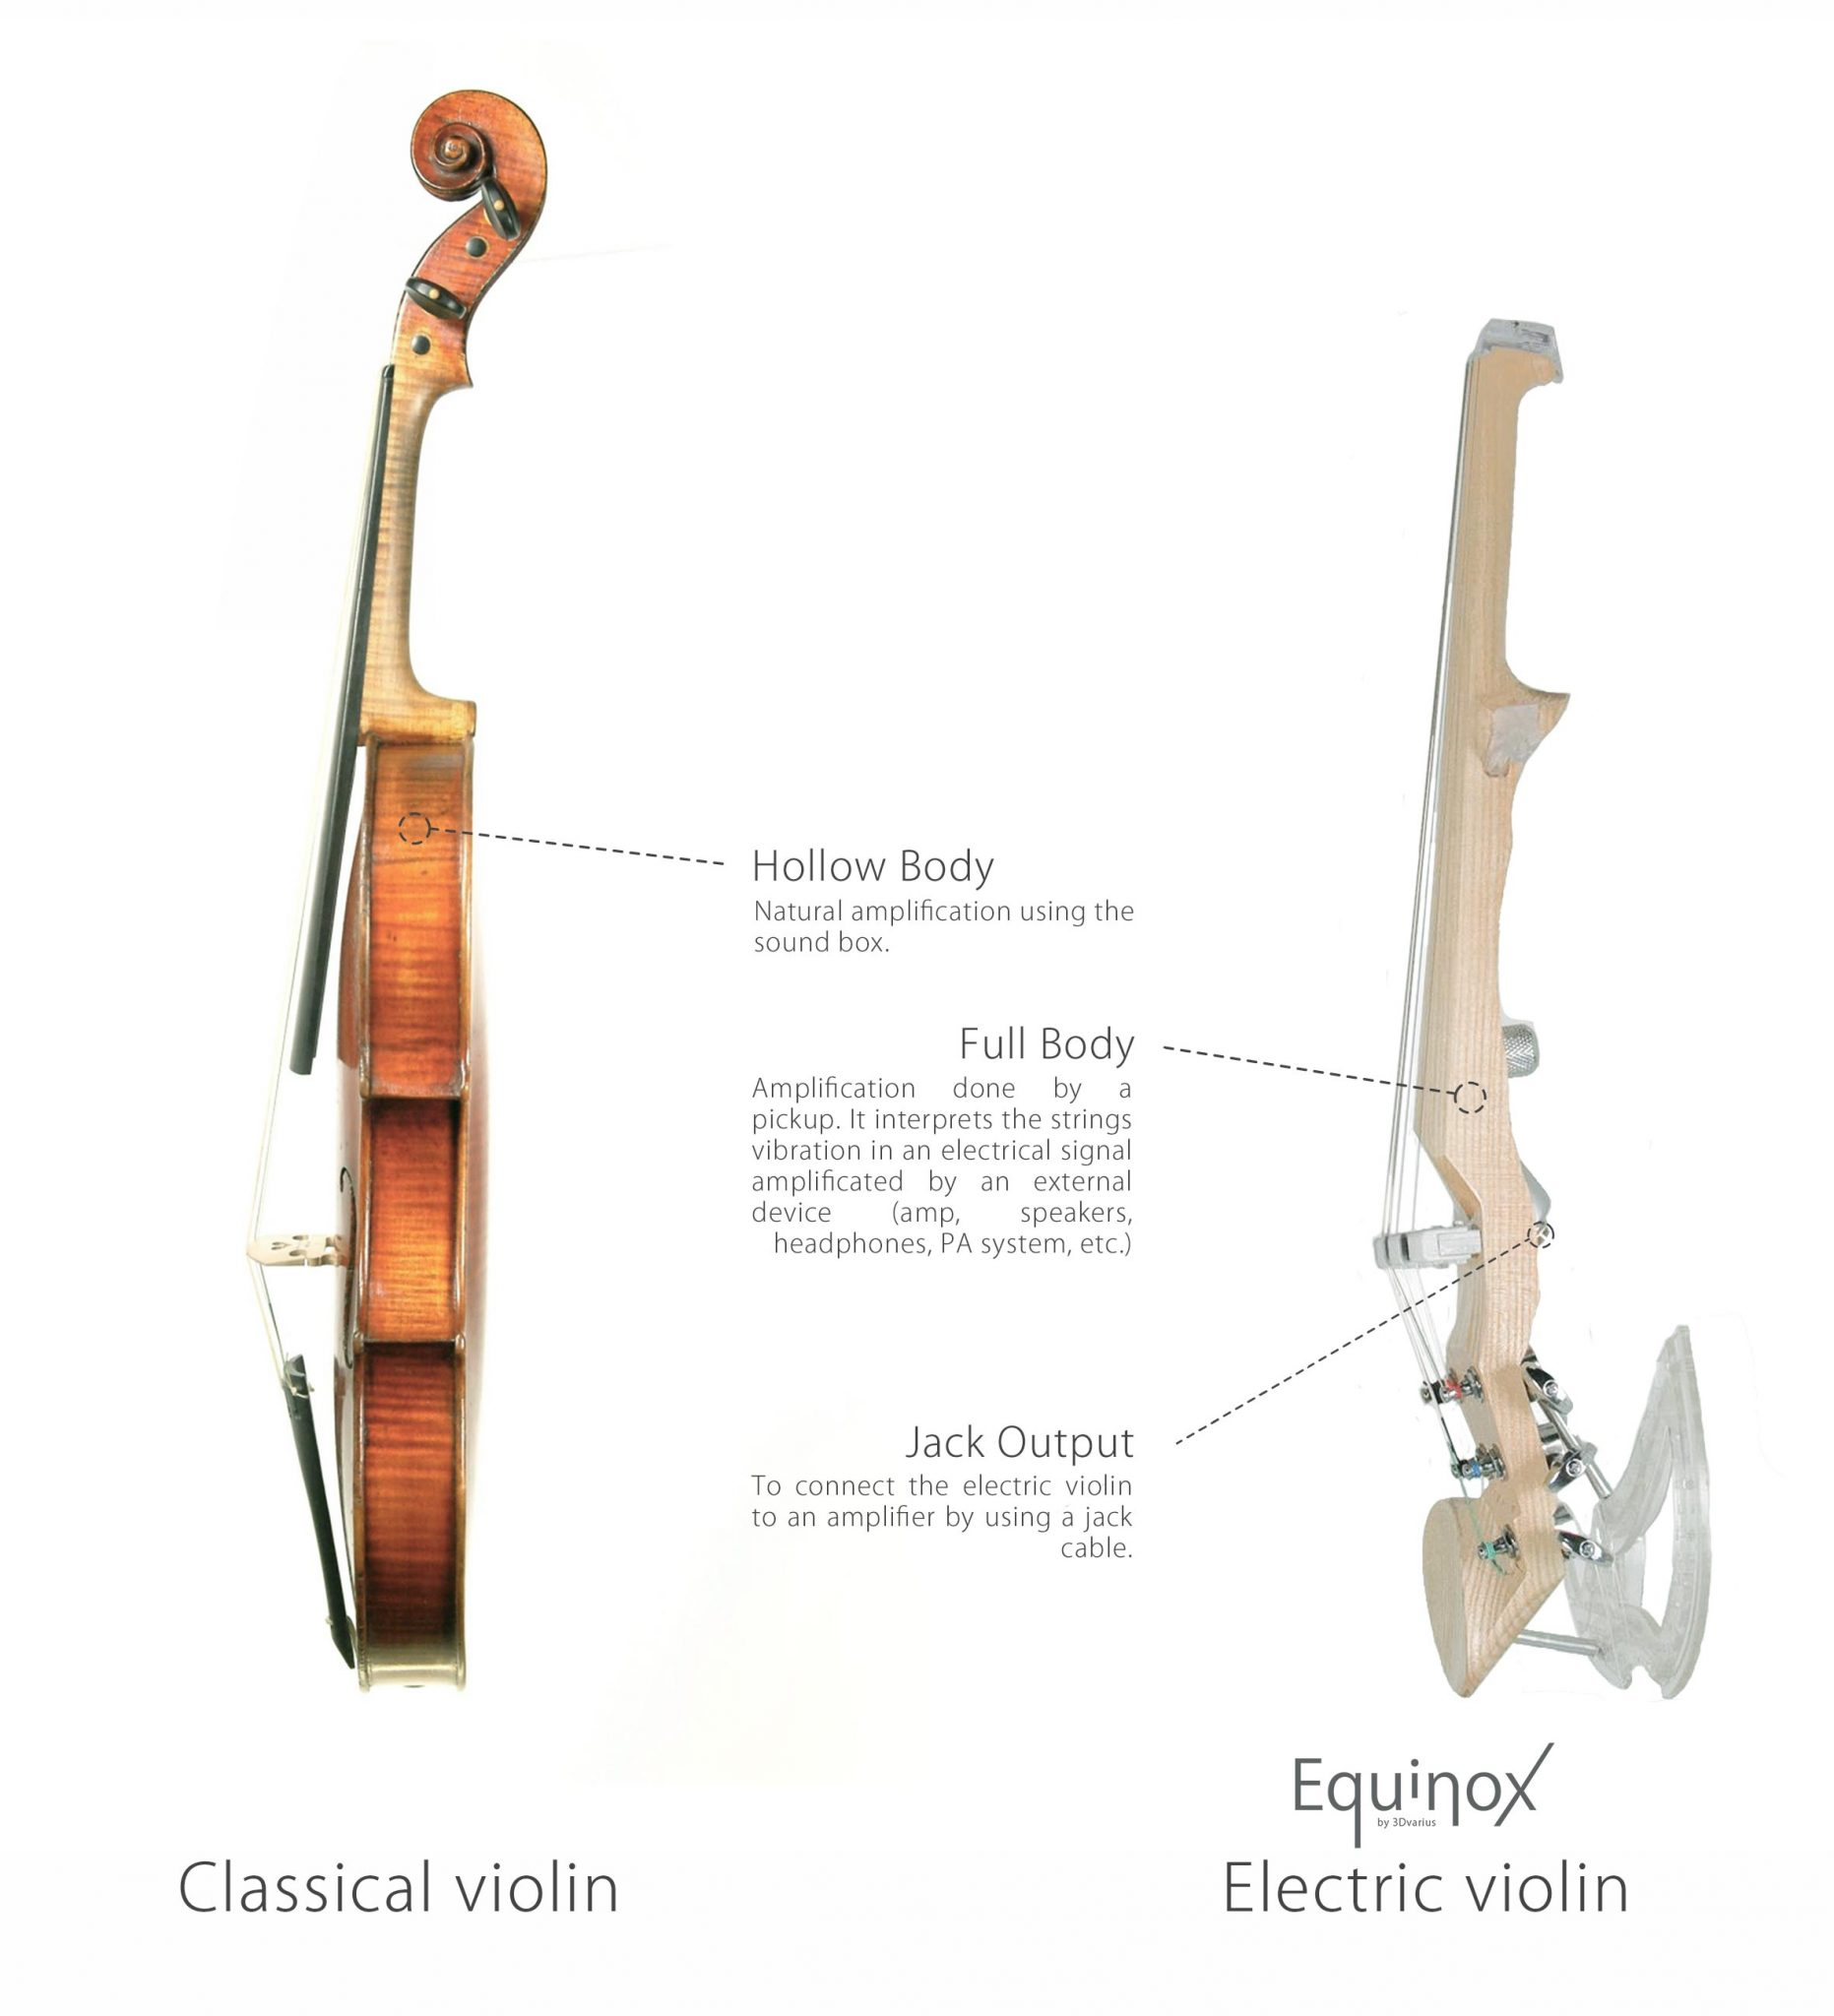 What are the differences between an acoustic and an electric violin?